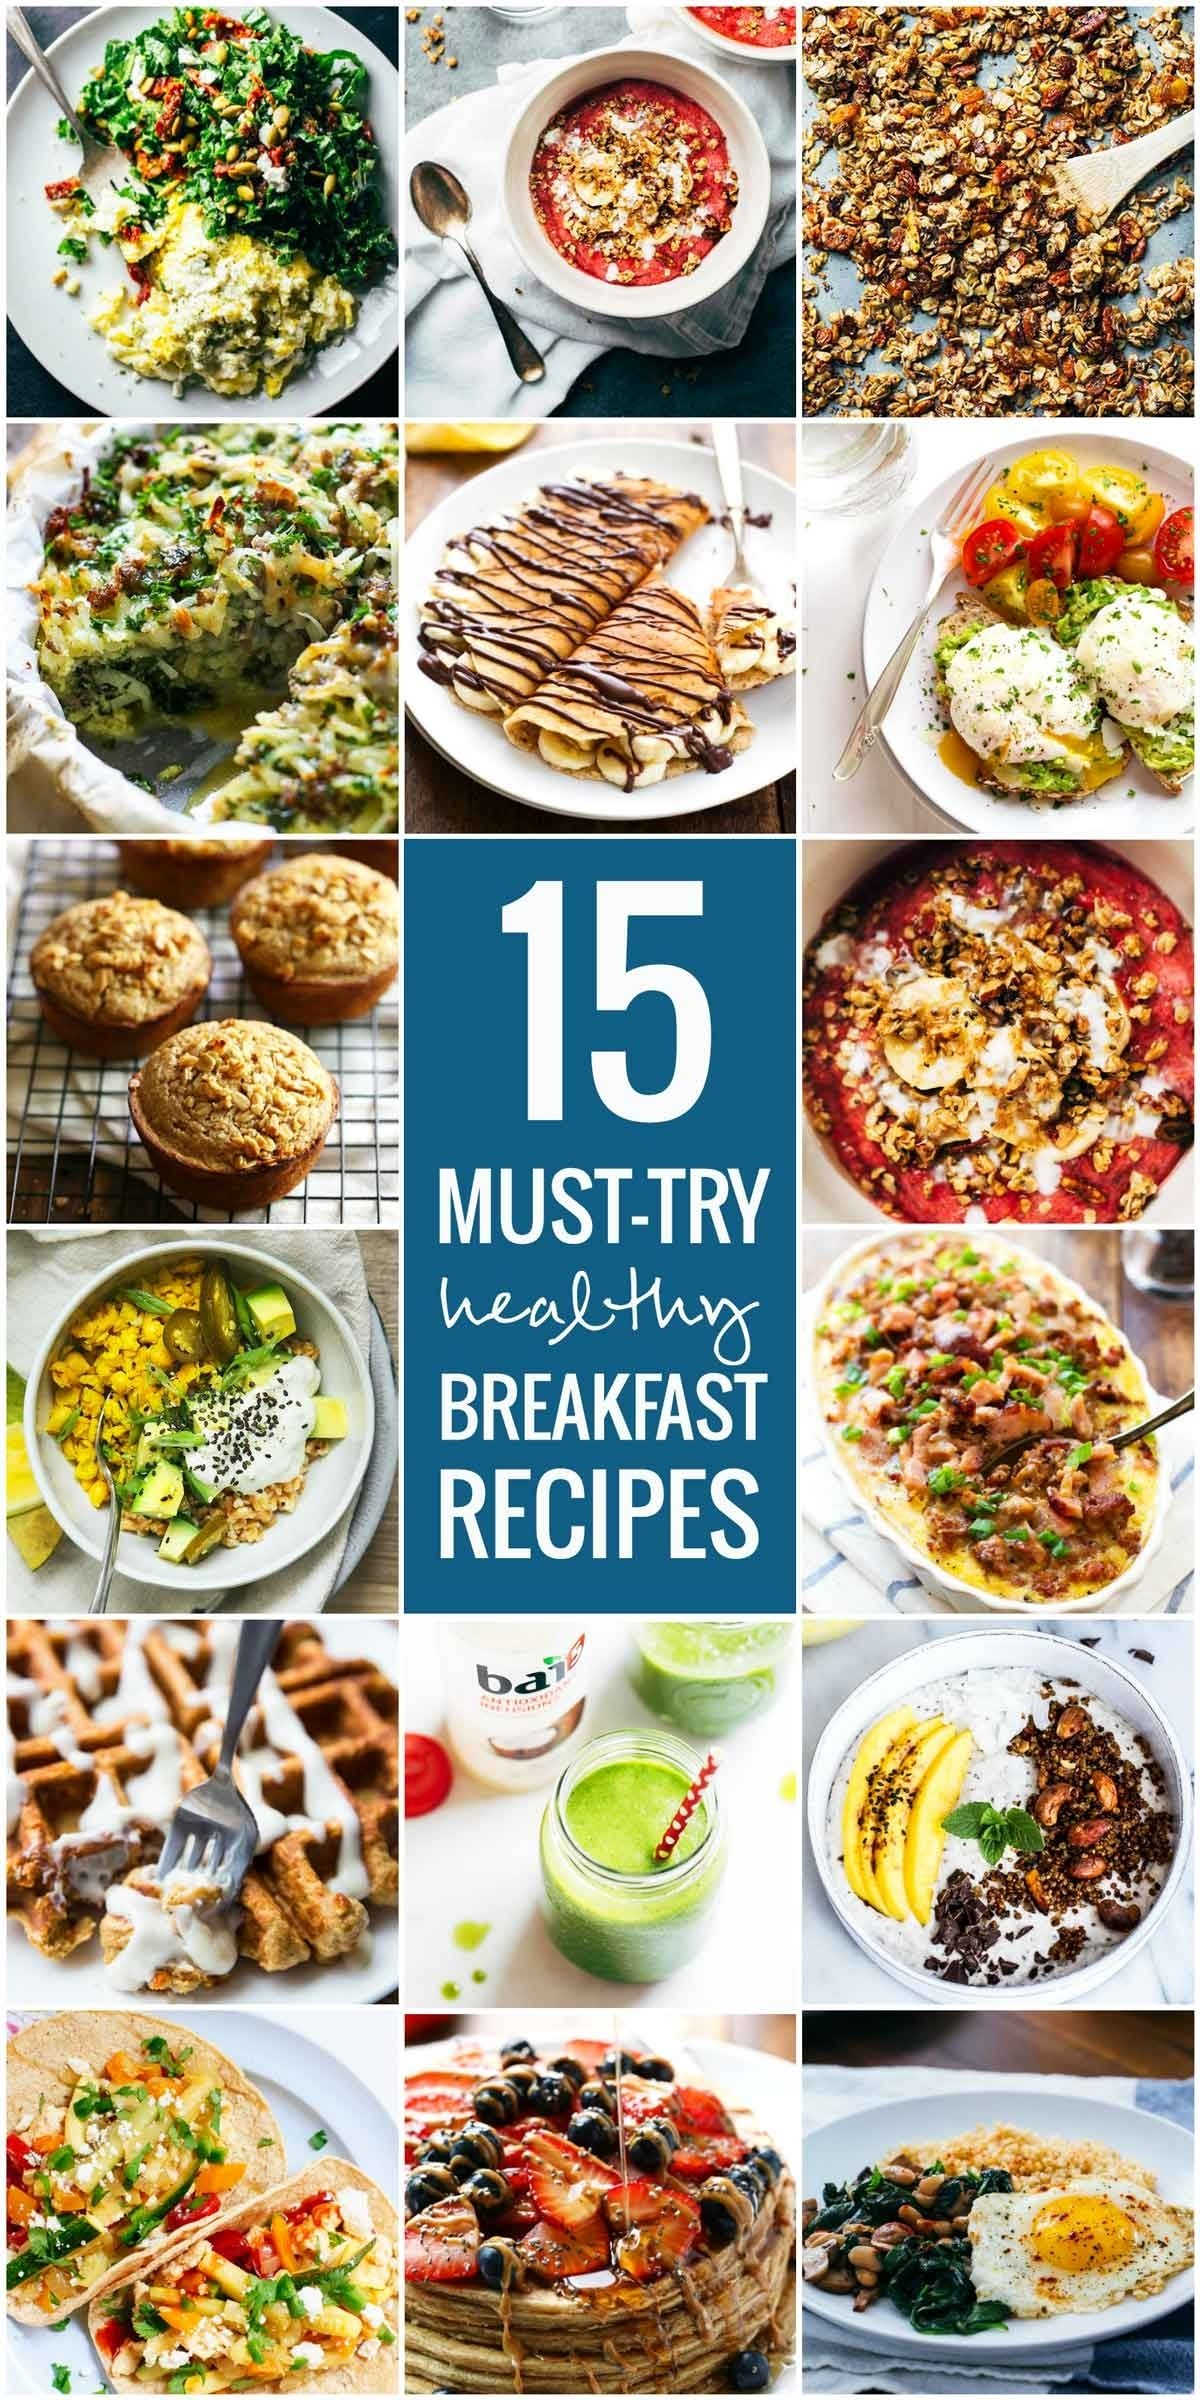 10 Fashionable Easy Breakfast Ideas For A Group 15 must try healthy breakfast recipes pinch of yum 2 2020